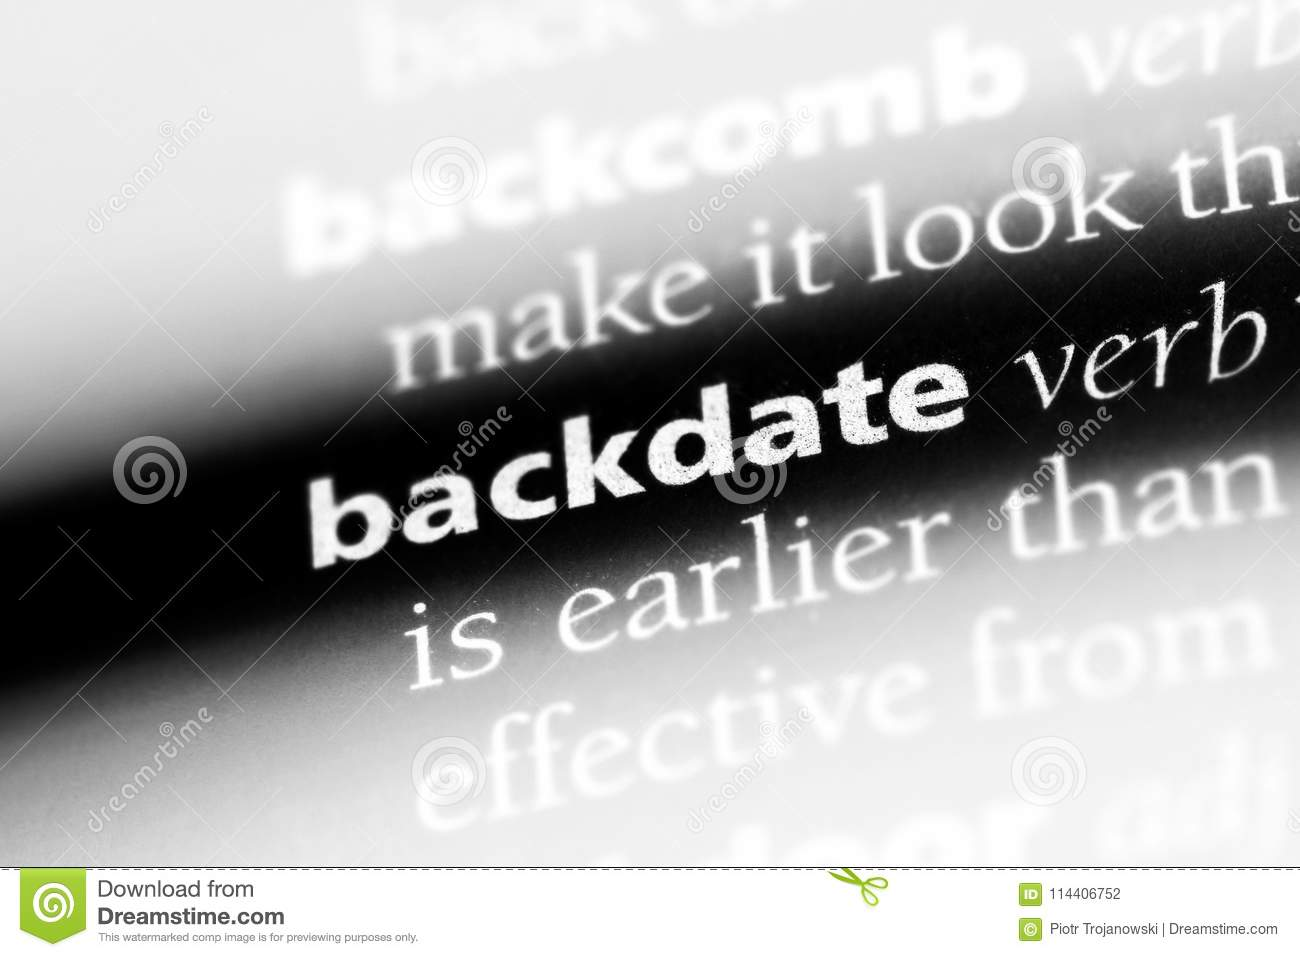 Stock backdating definition